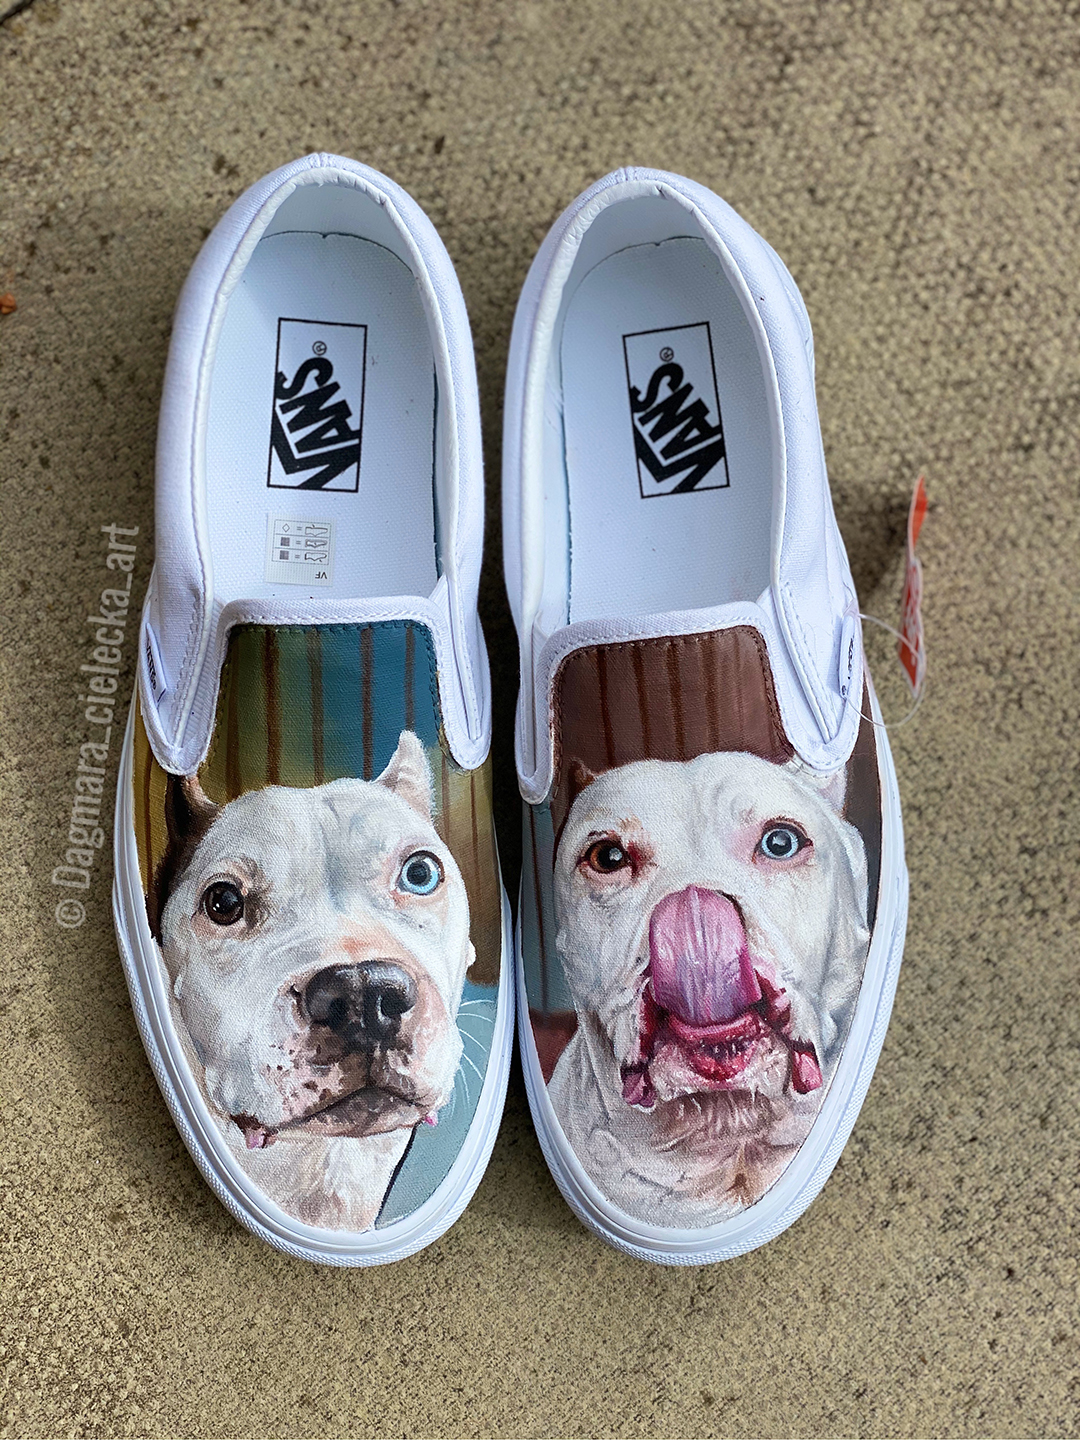 Hand Painted Vans of Daphne